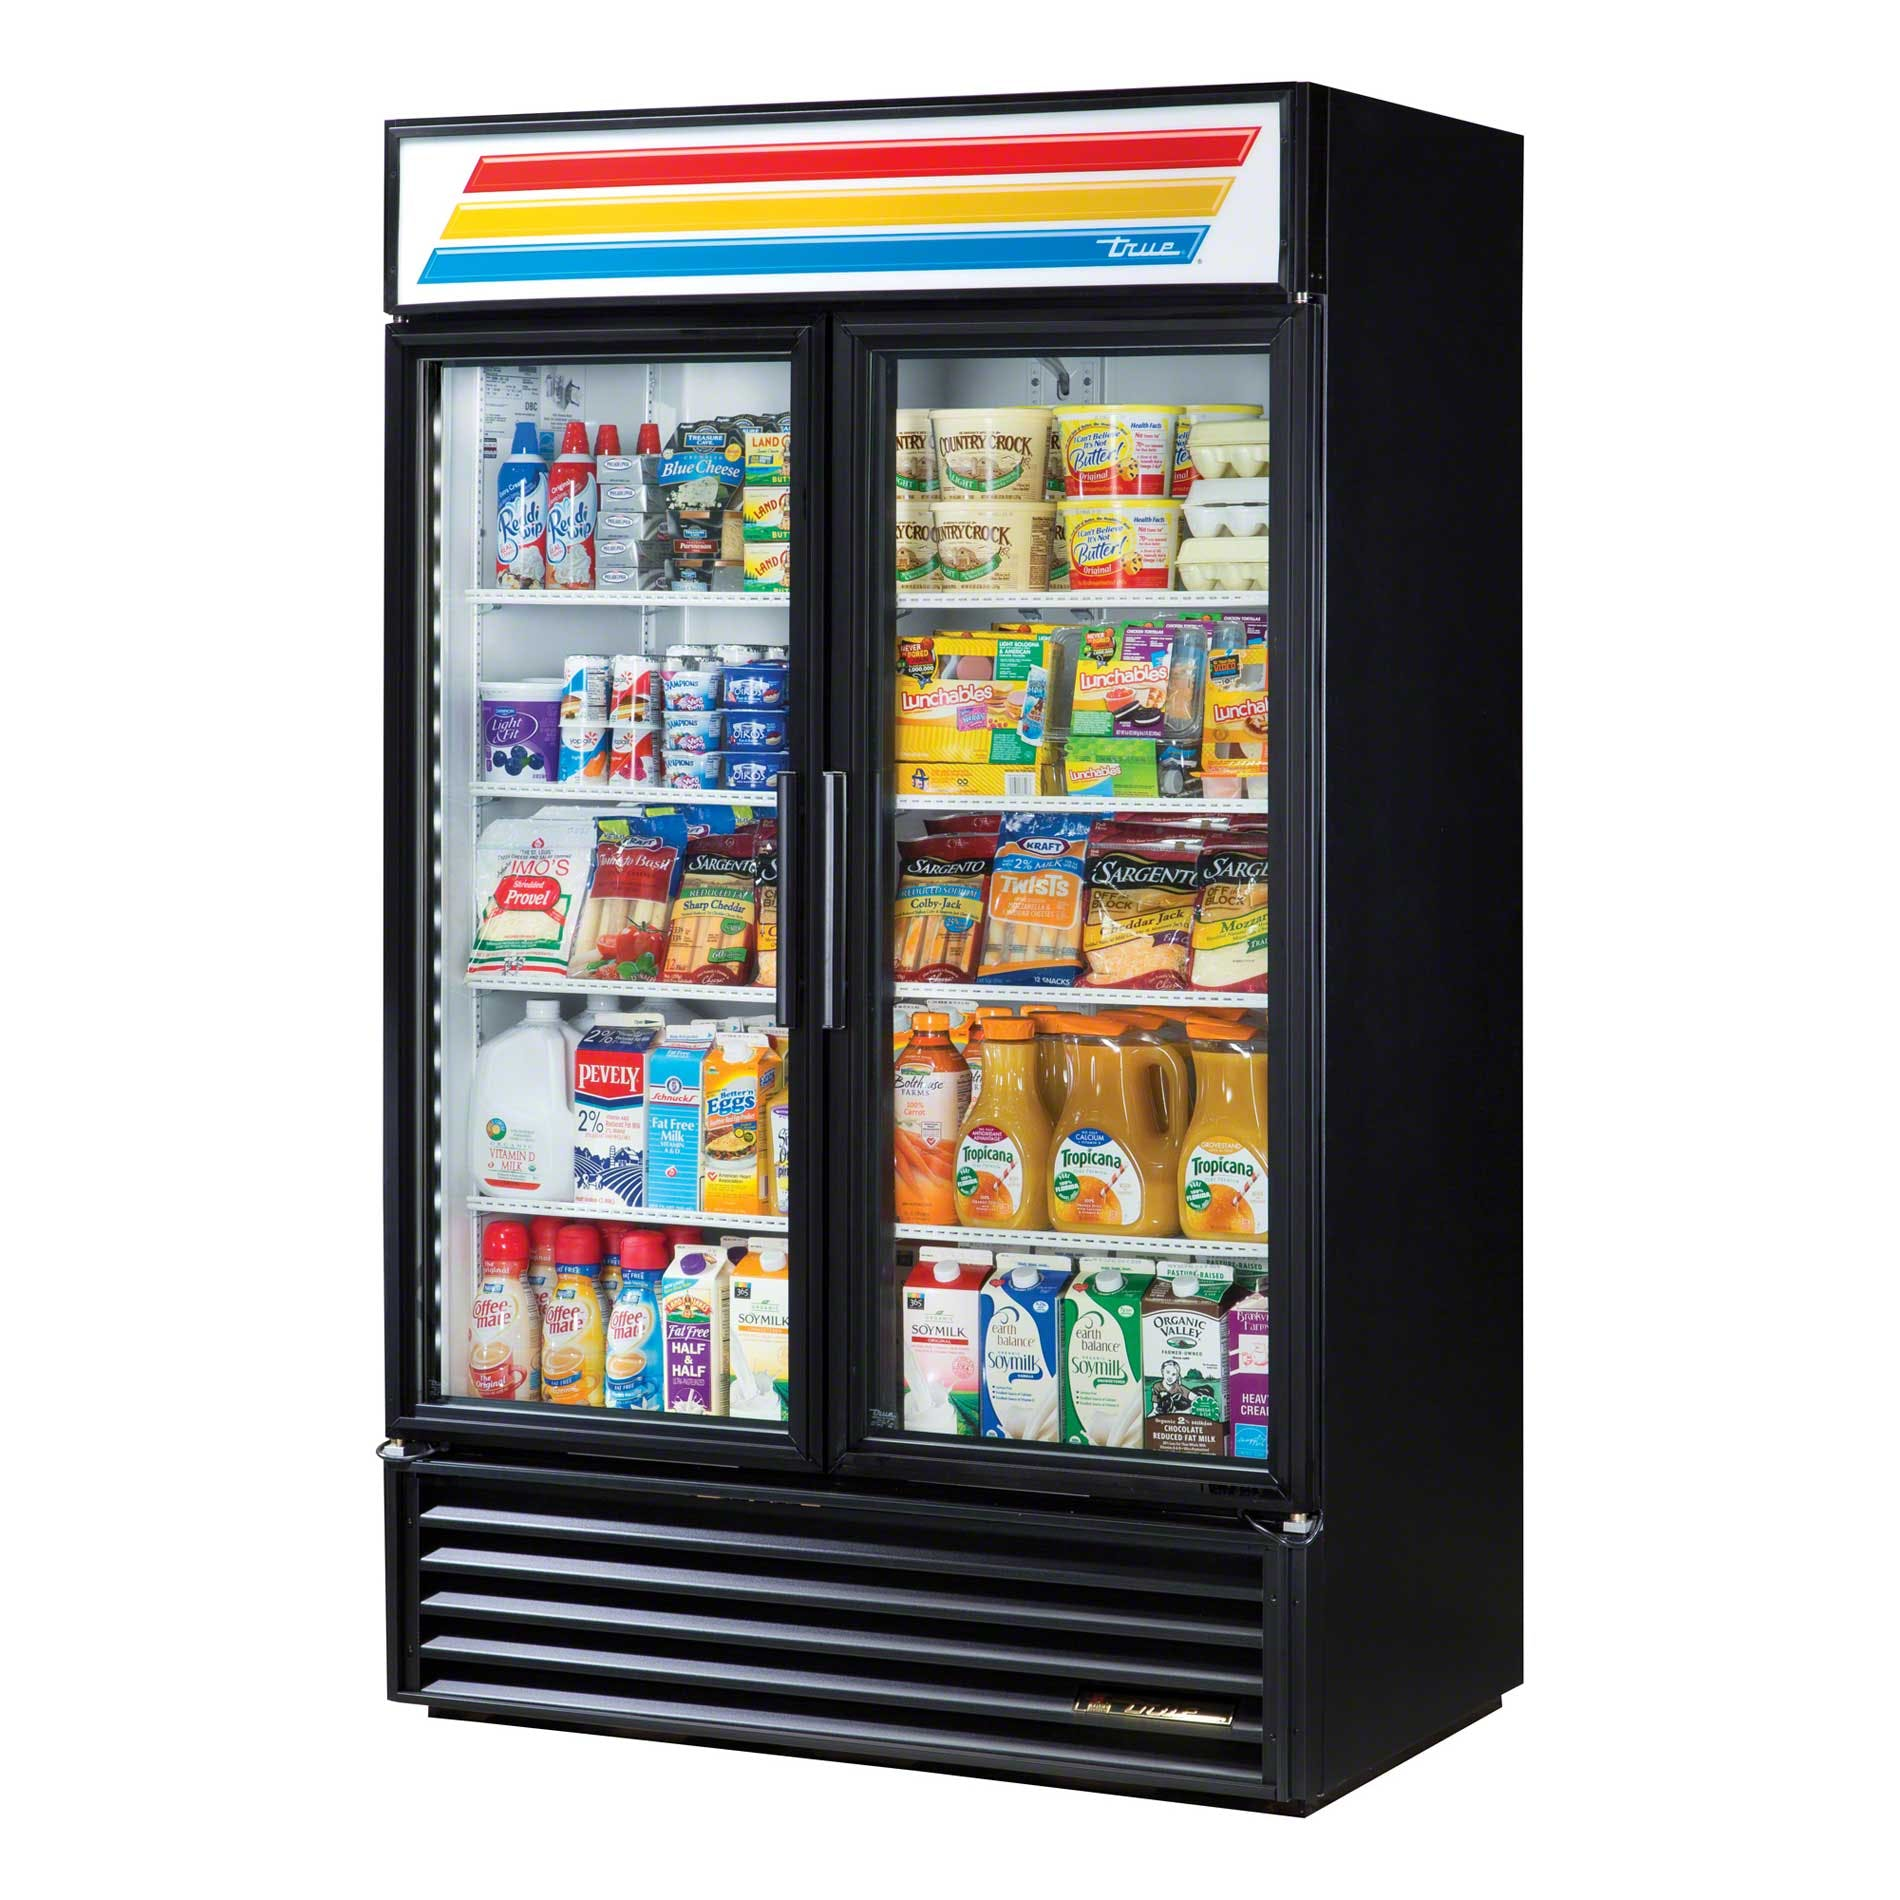 "True - GDM-43-LD 47"" Swing Glass Door Merchandiser Refrigerator LED Commercial refrigerator sold by Food Service Warehouse"